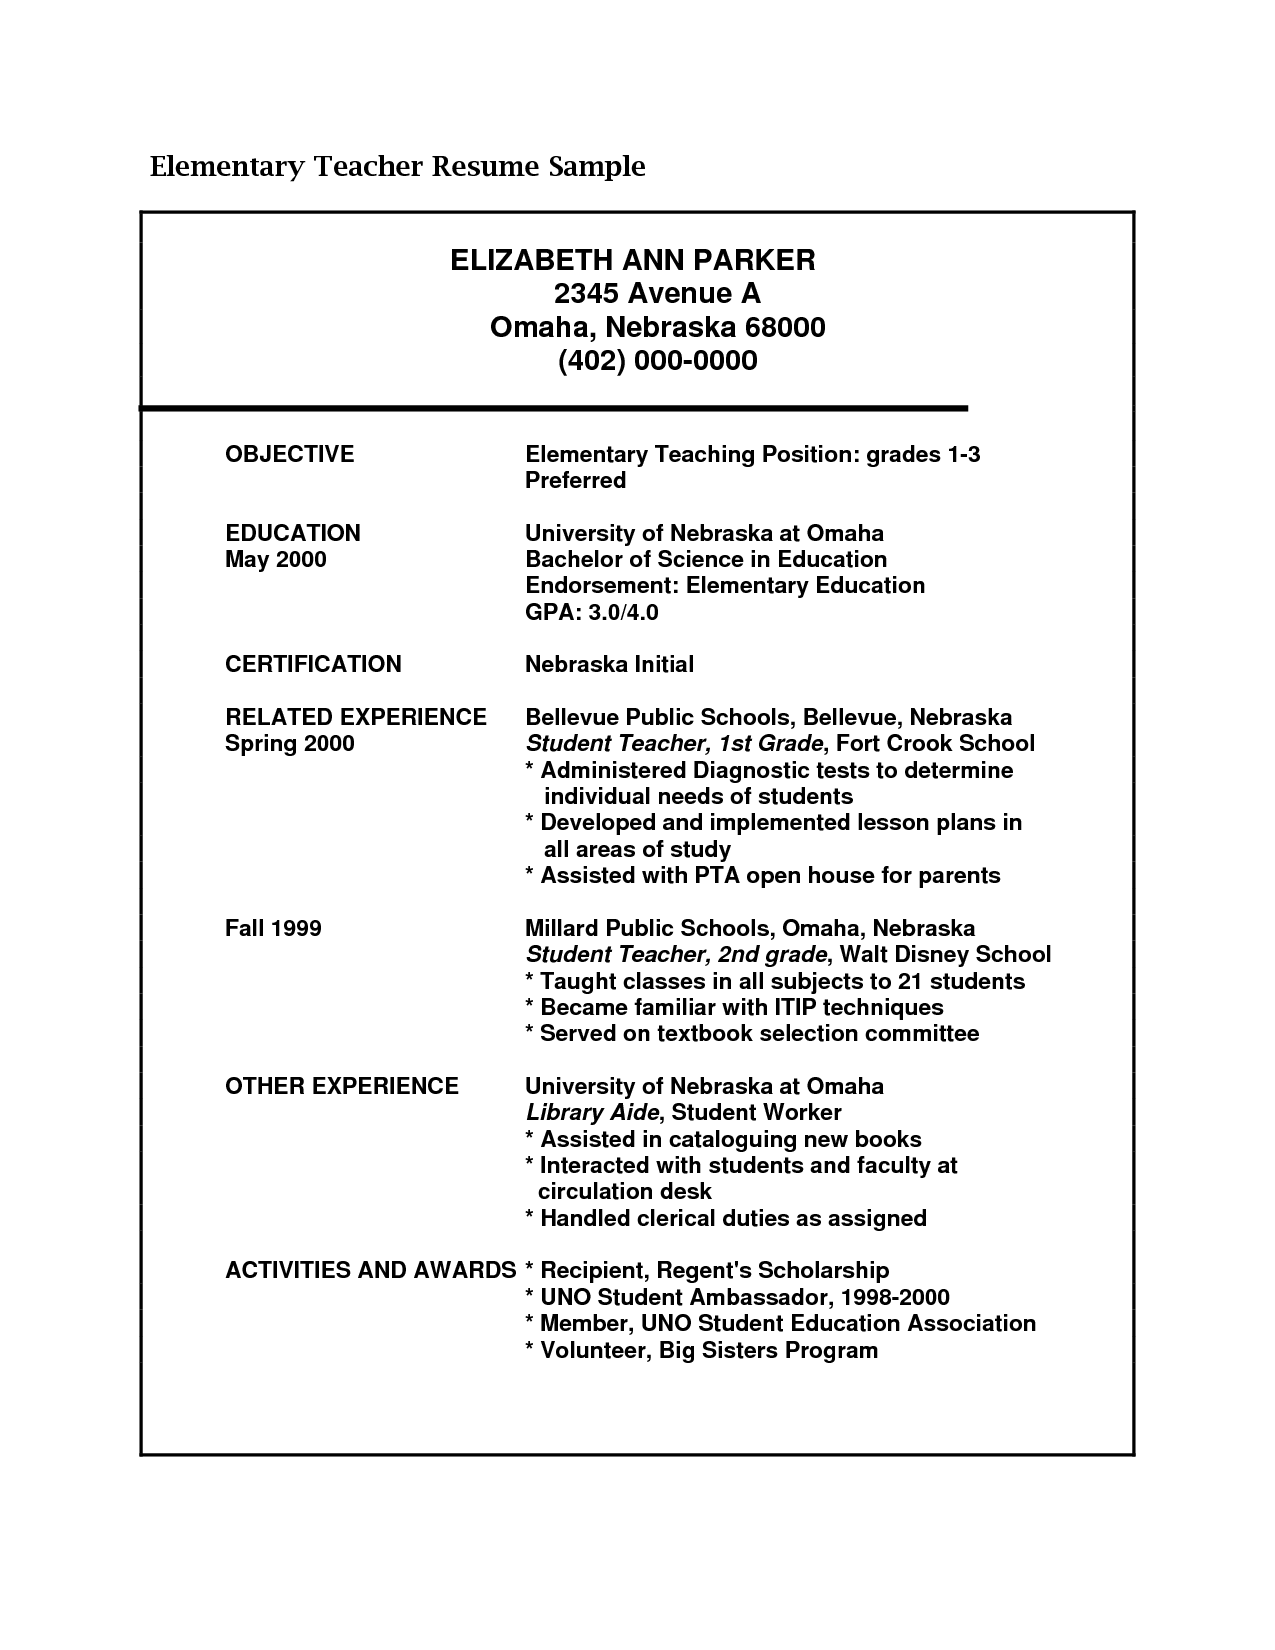 admin teacher resume examples elementary teacher resume examples cv for teachers teachers professional résumés works education professionals to create dynamic job applications and prepare for interview